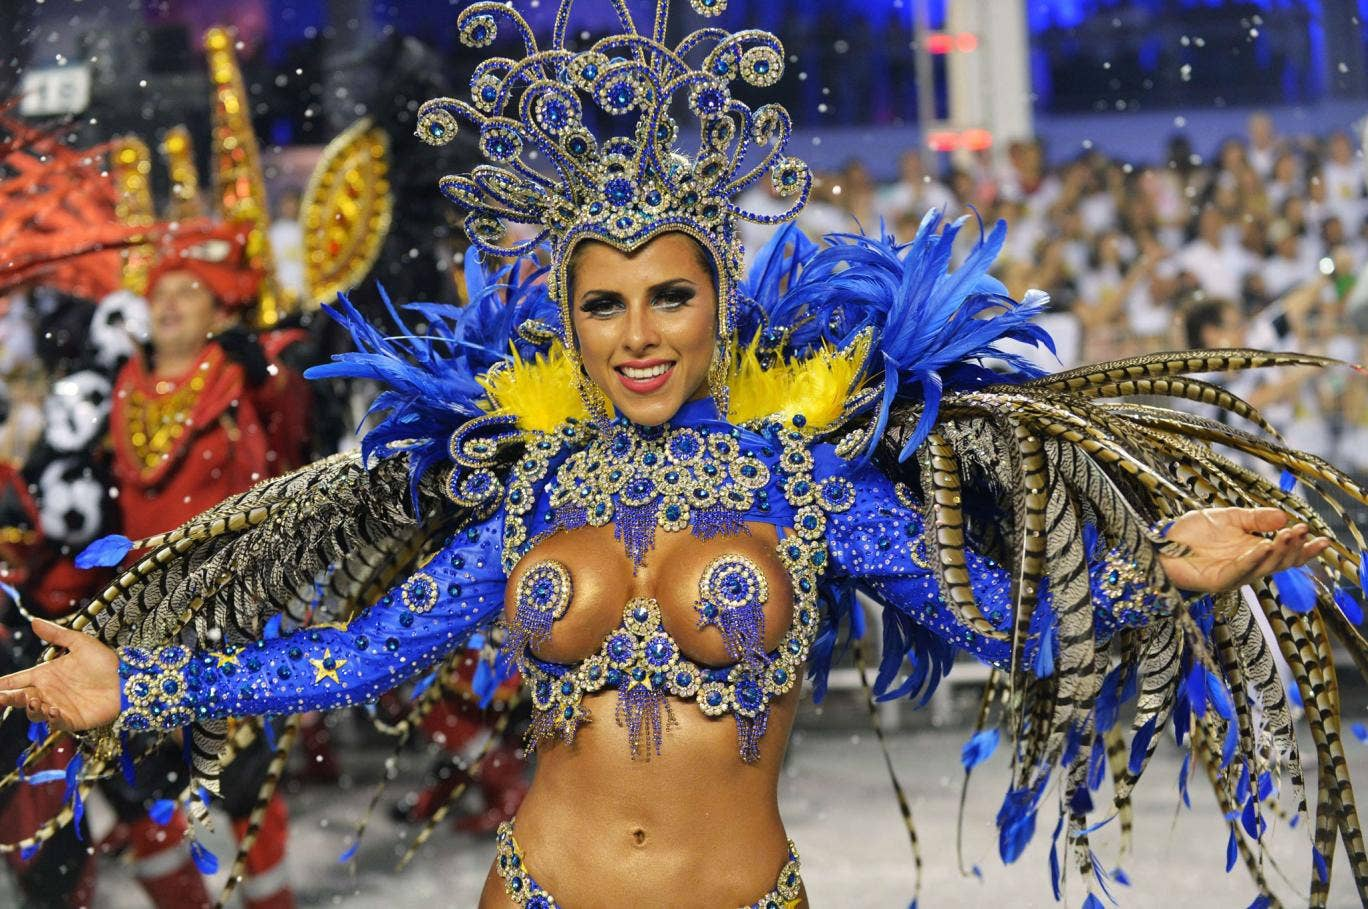 A dancer of the Gavioes da Fiel samba school performs during the second night of carnival parade at the Sambadrome in Sao Paulo